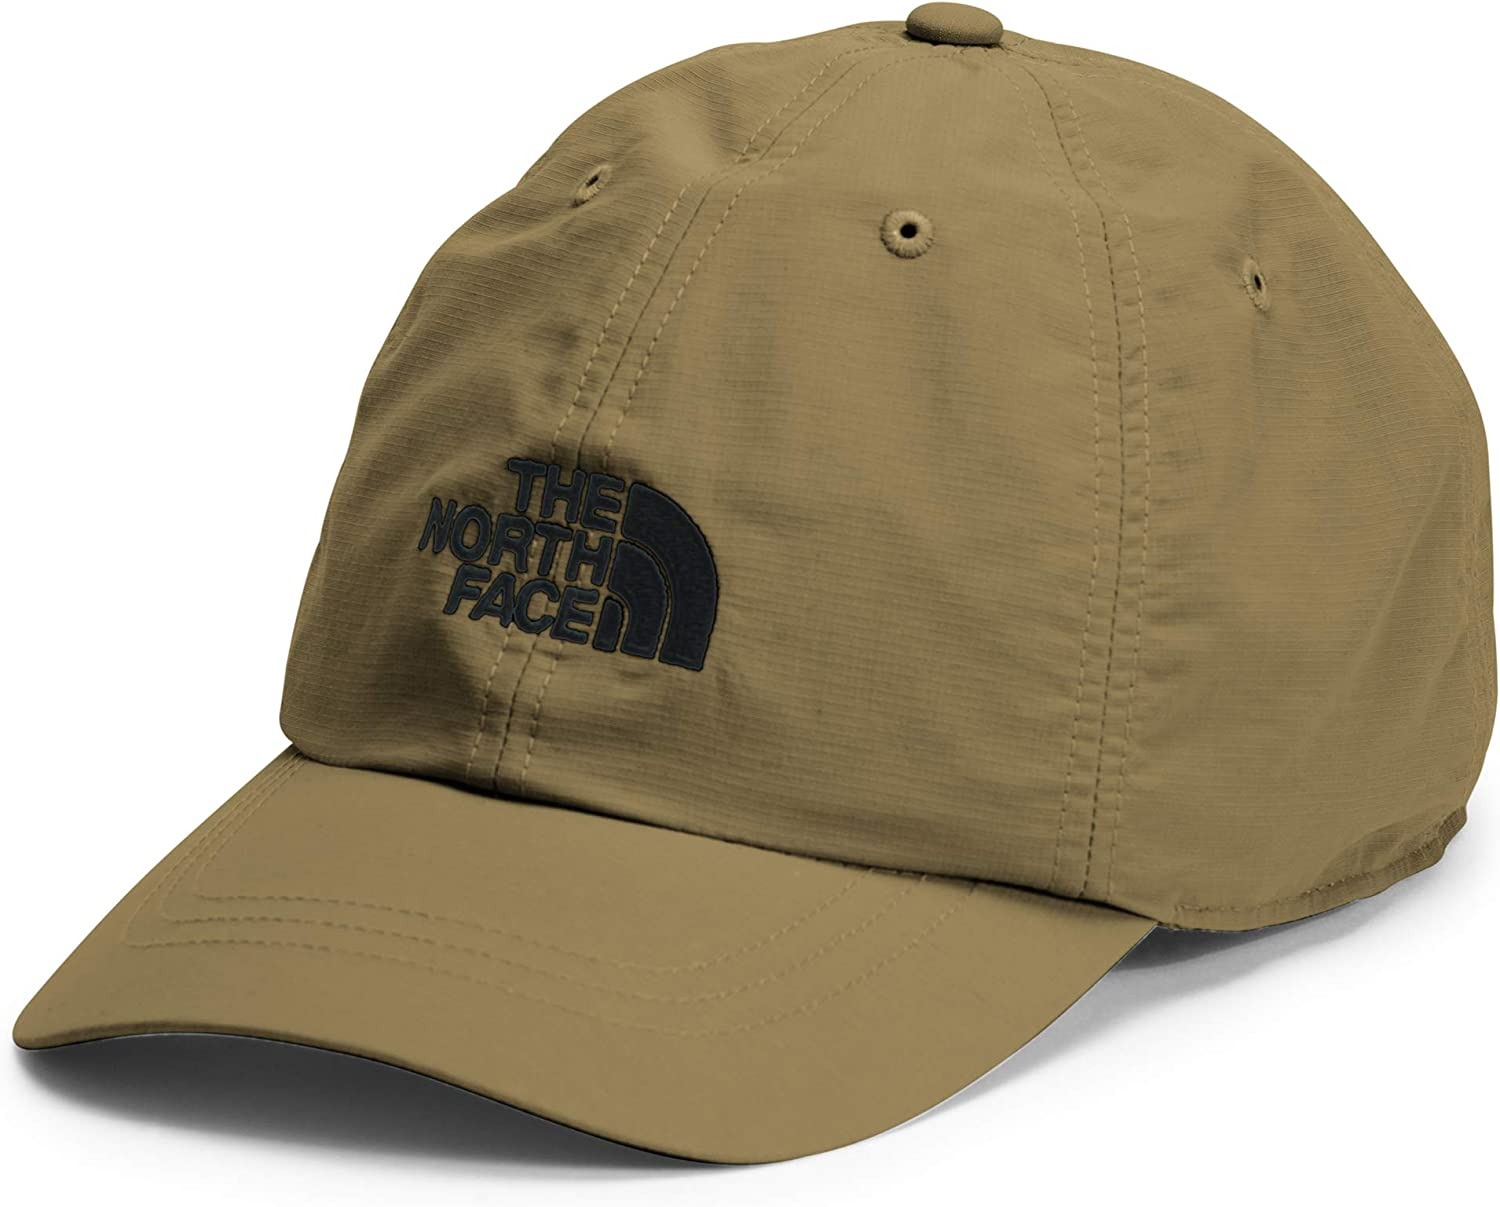 The North Face Unisex-Adult Horizon Ball Cap : Clothing, Shoes & Jewelry